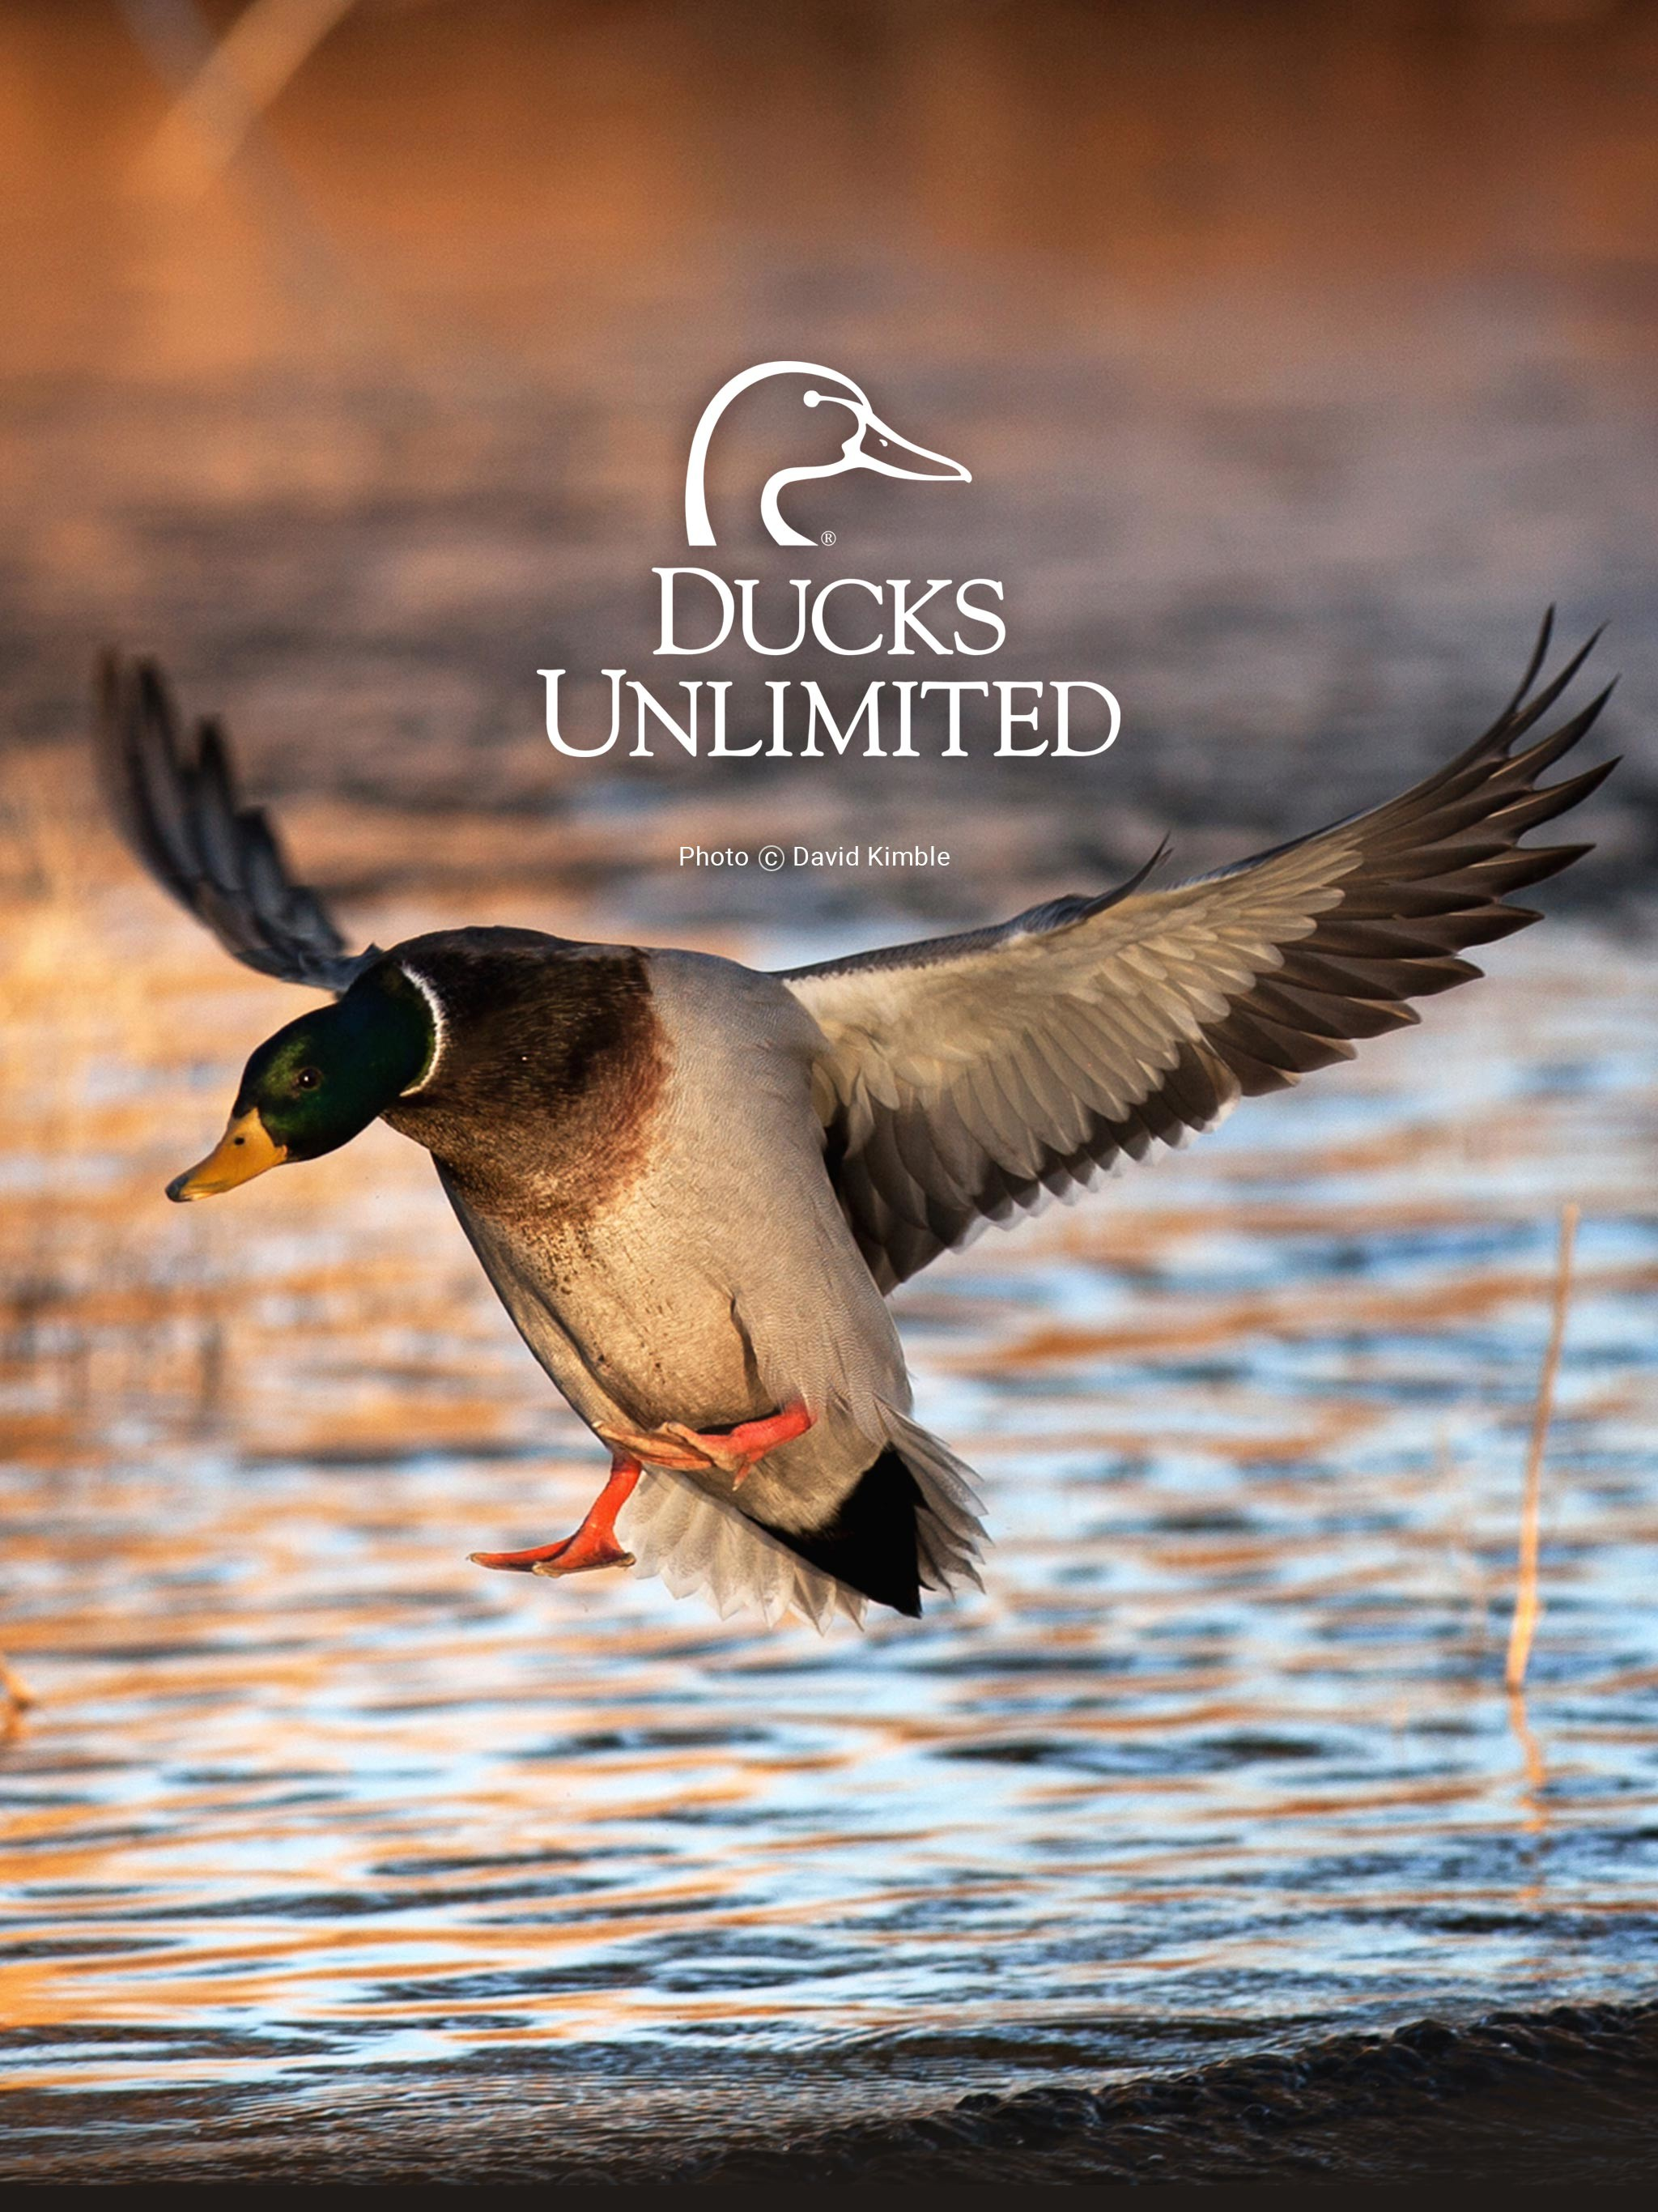 Waterfowl wallpaper 51 images - Hunting wallpaper for android ...